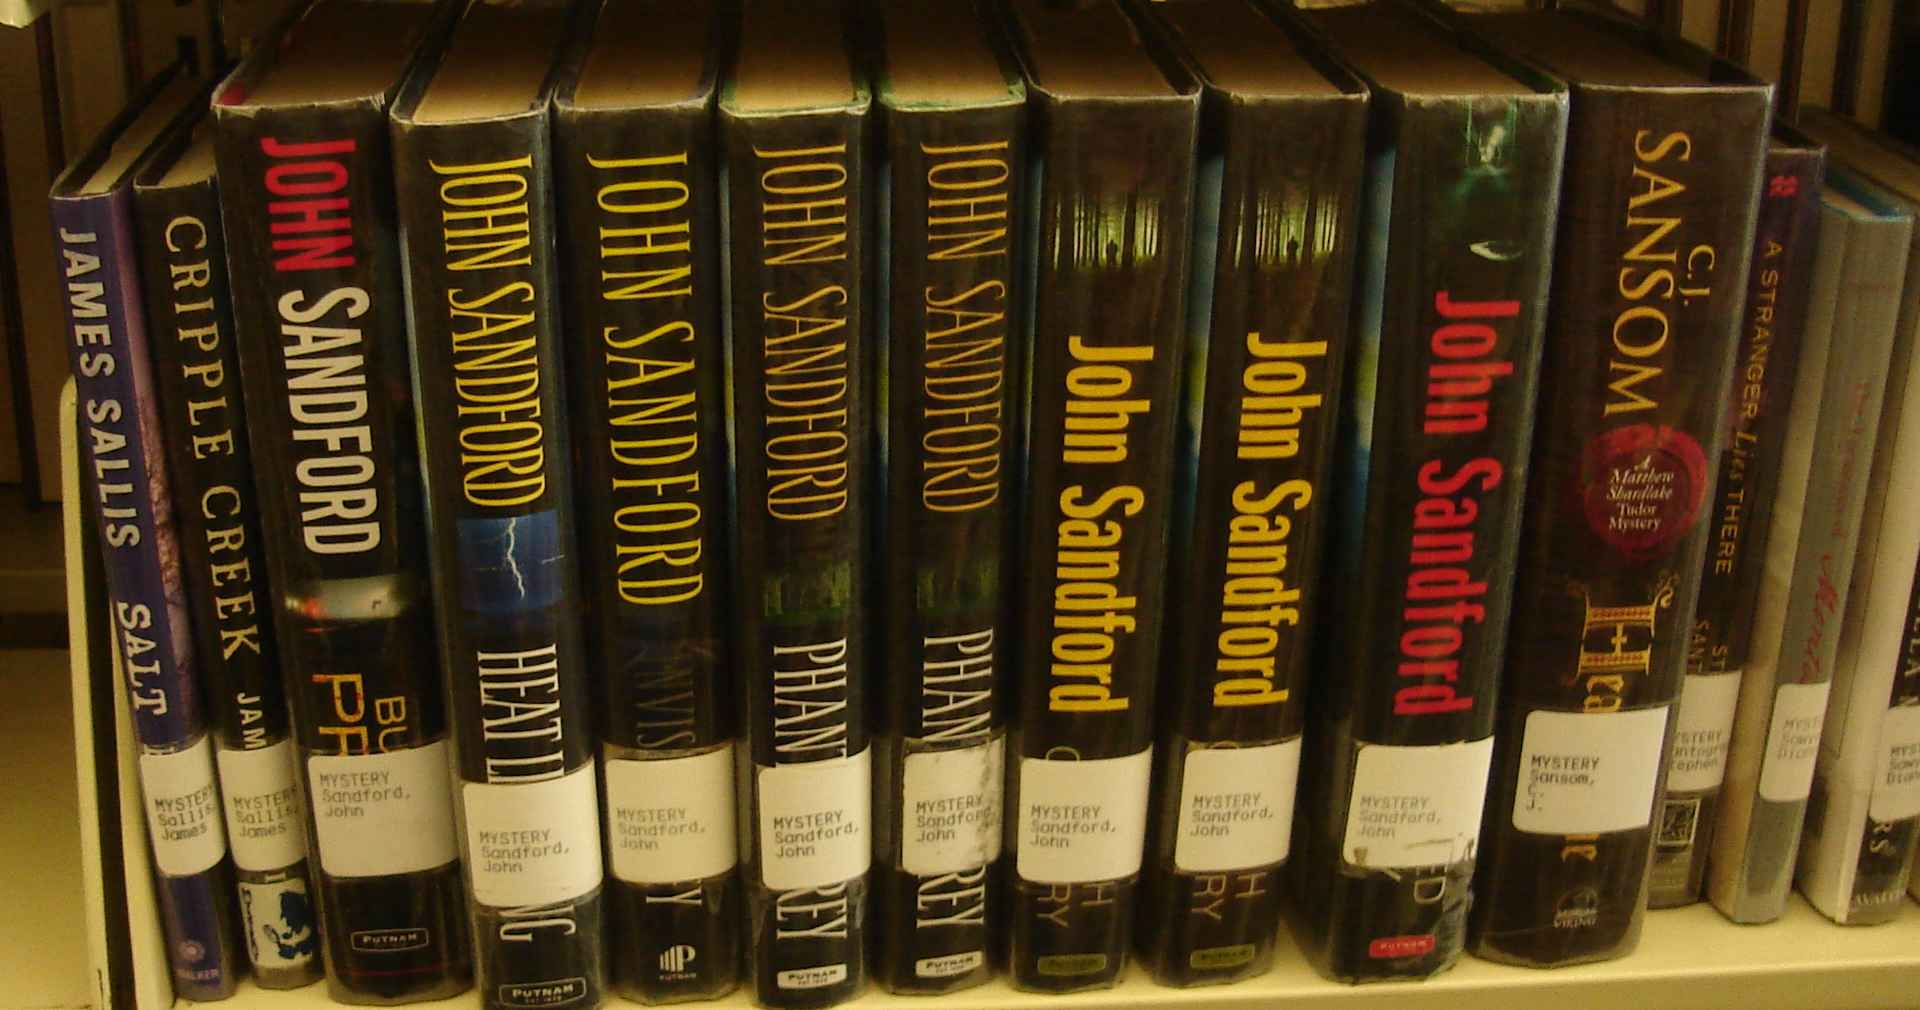 A John Sandford book.  But which one?